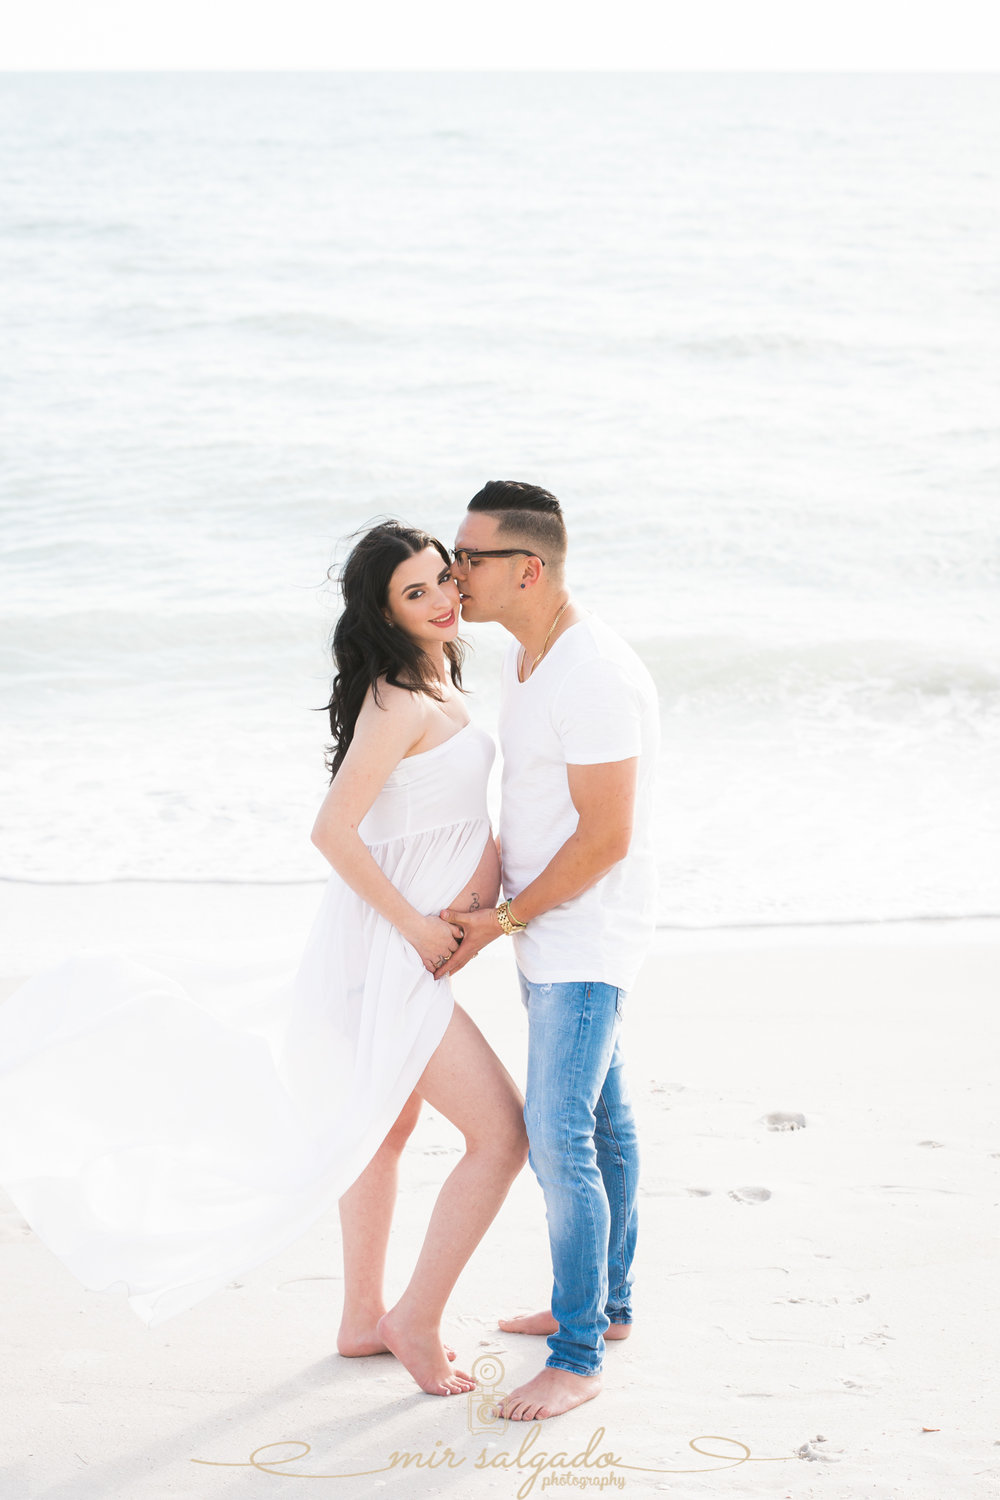 St.Pete-beach-maternity-session, St.Pete-maternity-photo, beach-maternity-session